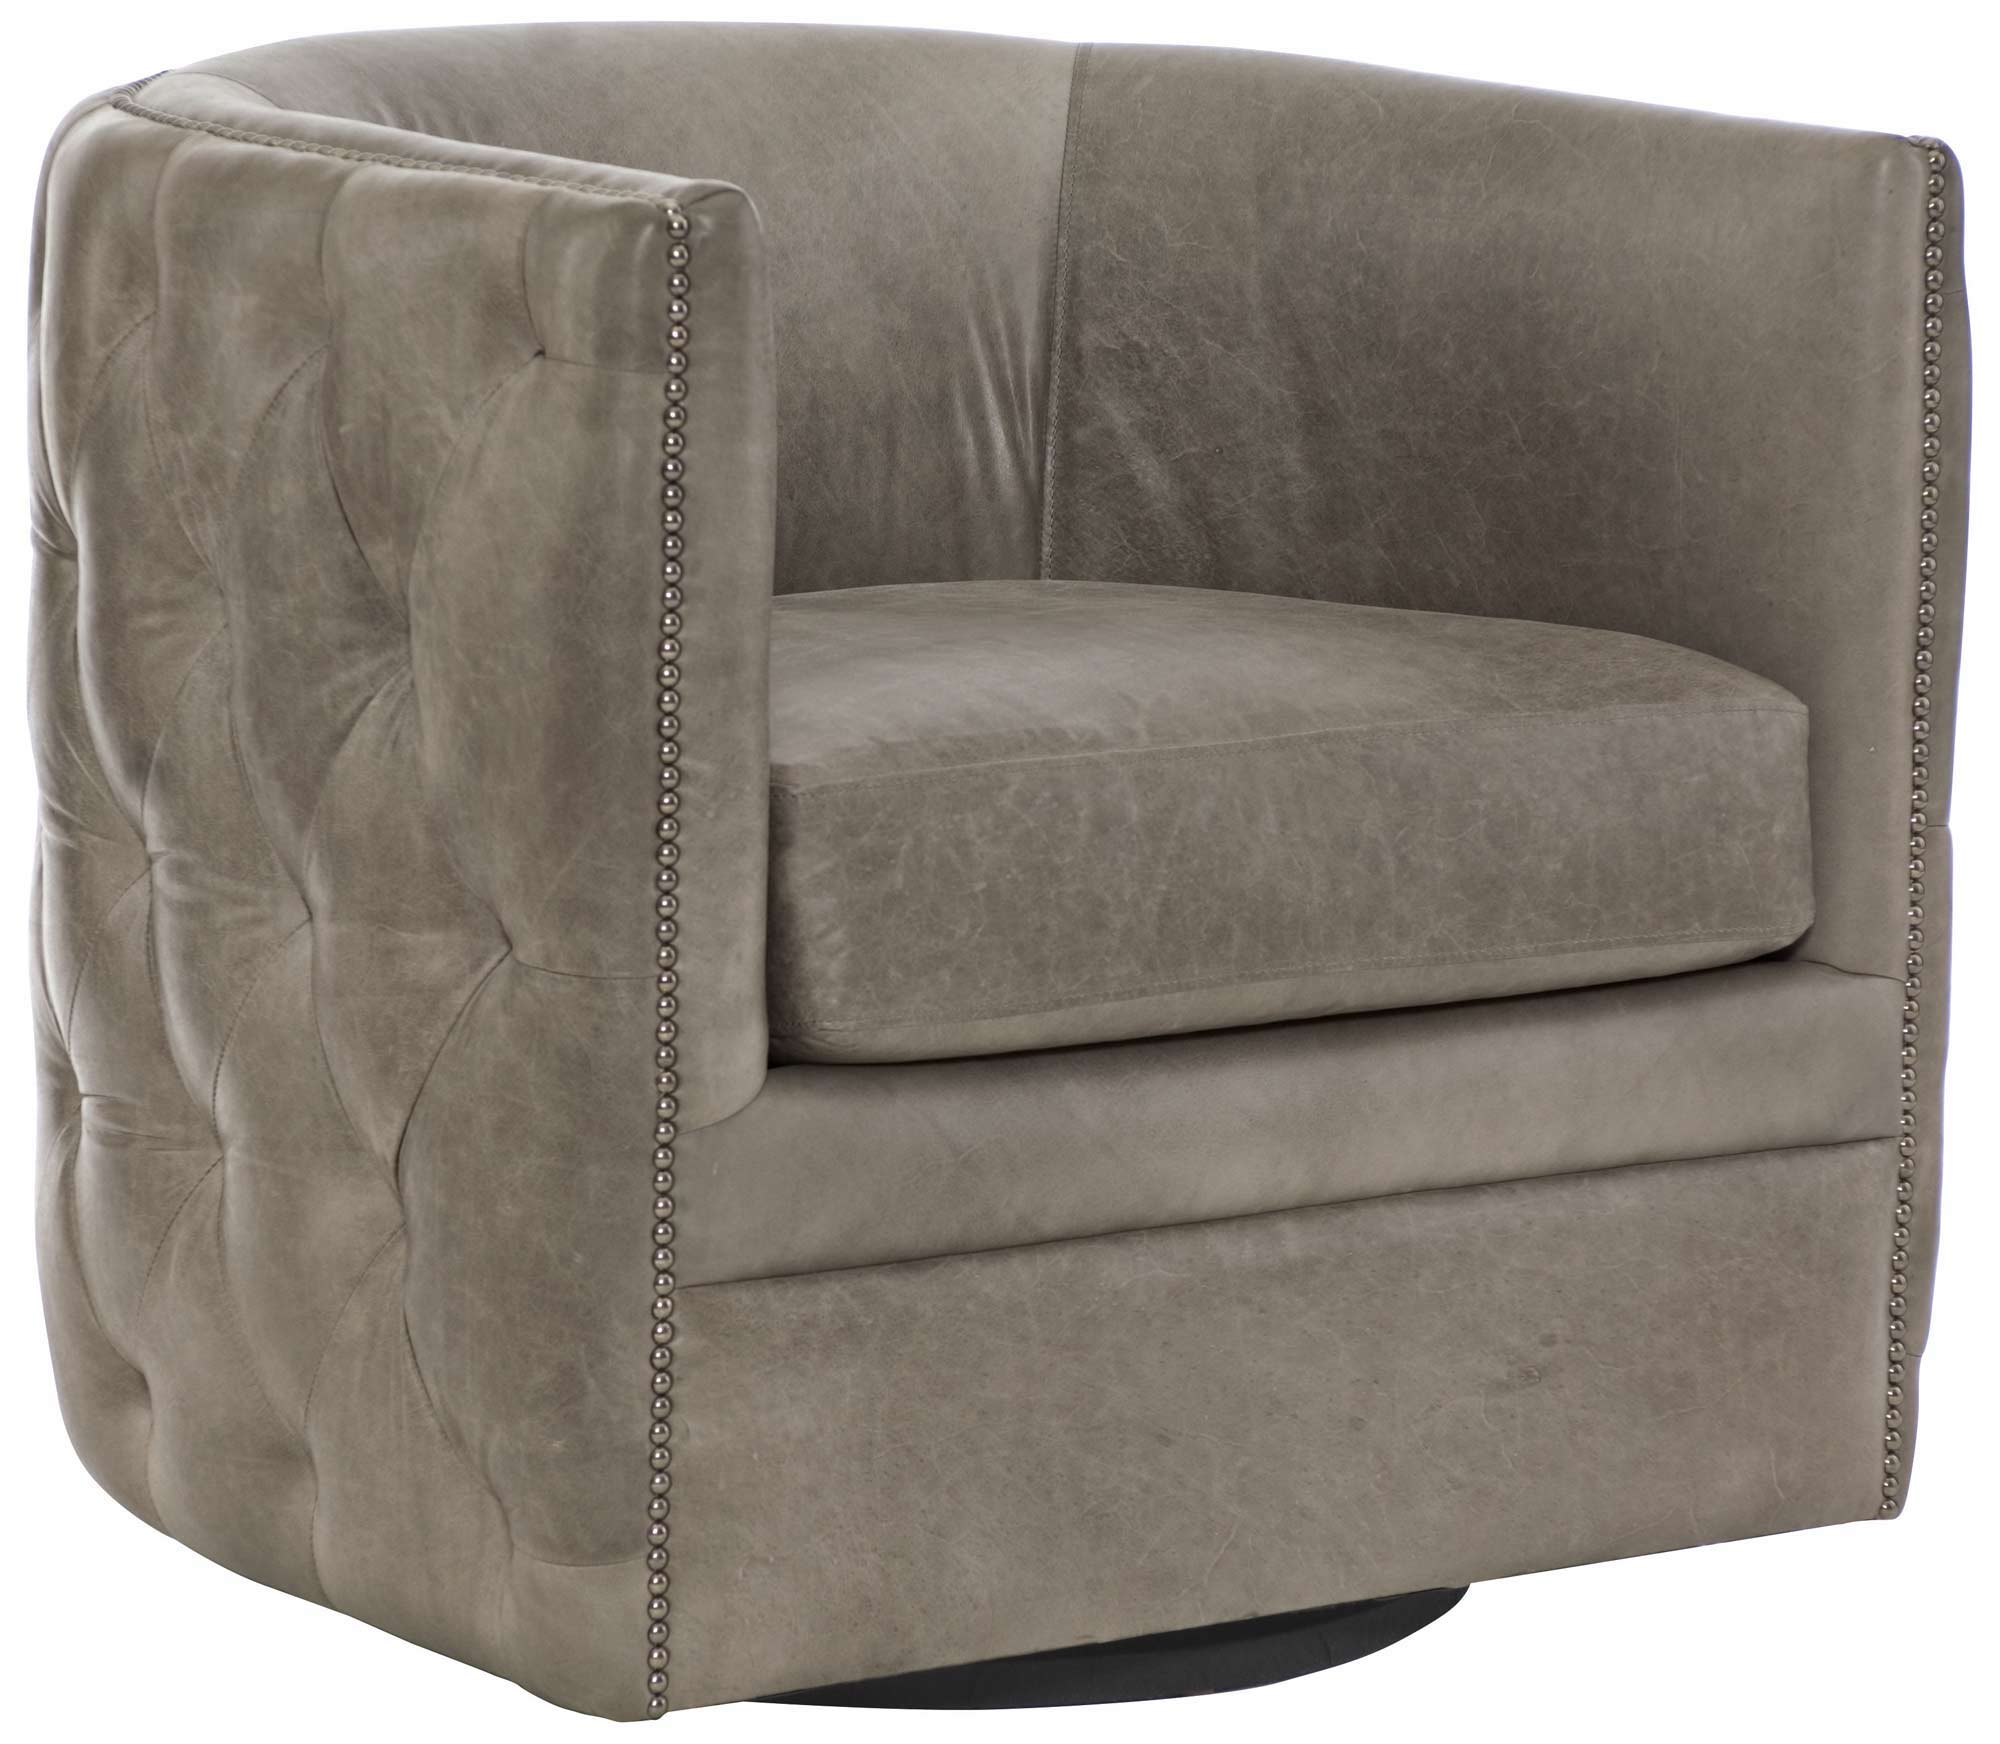 Outstanding Bernhardt Leather Chair Inzonedesignstudio Interior Chair Design Inzonedesignstudiocom